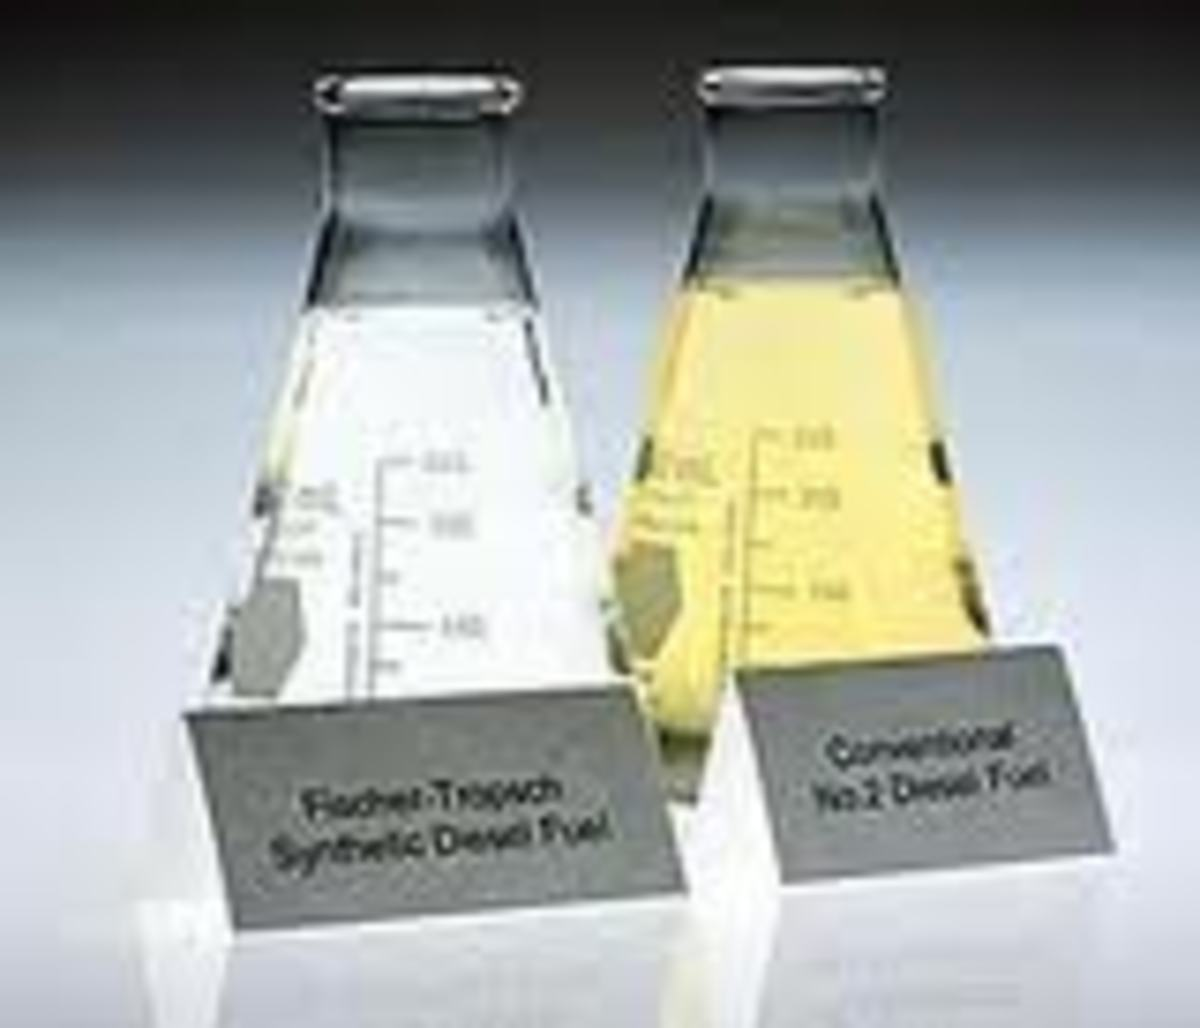 Fischer-Tropsch diesel on the left, conventional on the right. Note the difference in colour due to impurities in the conventional fuel